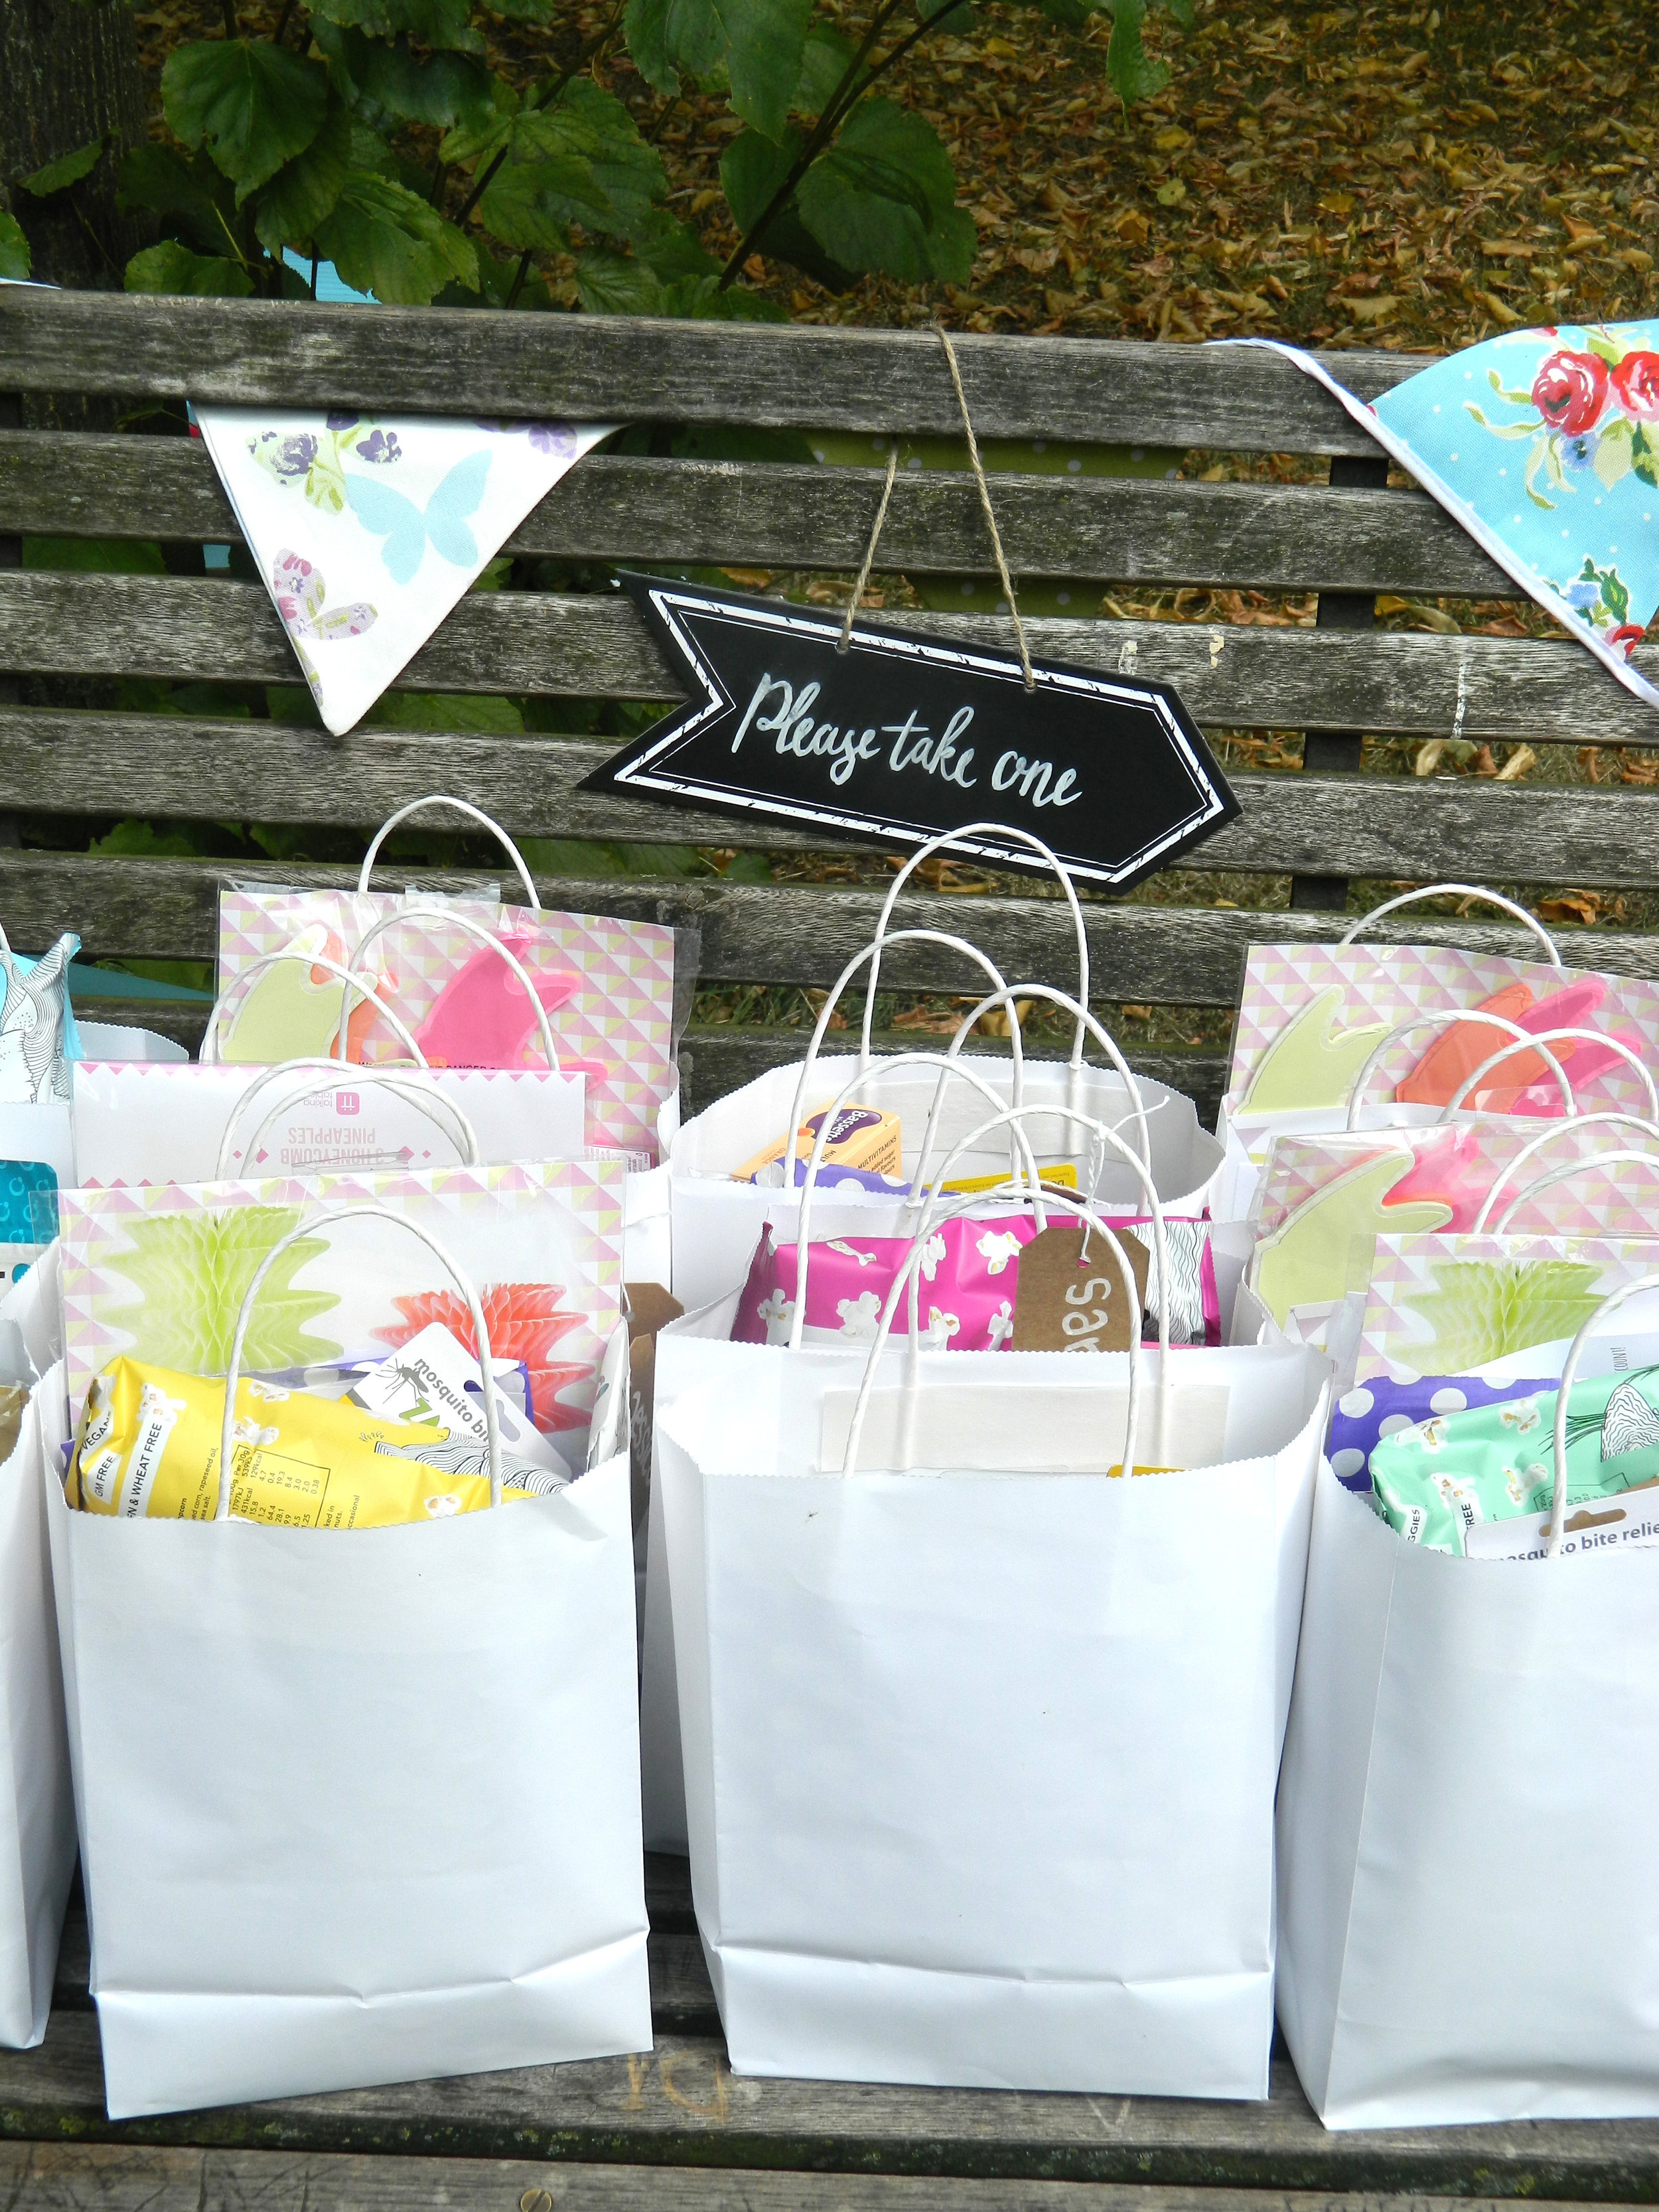 Just a small sample of the goody bags.